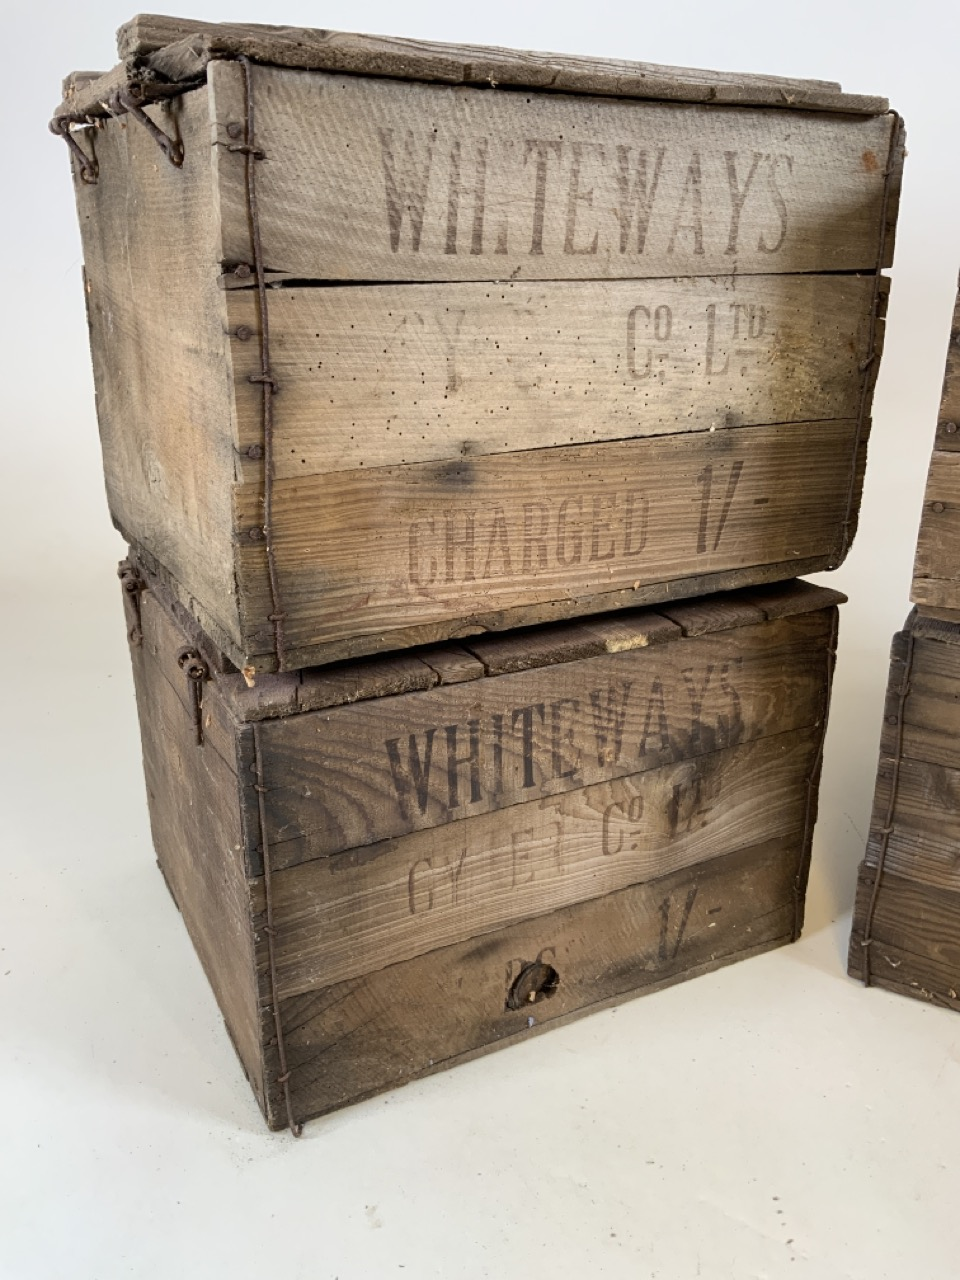 Four Whiteways Cyder Co ltd Cider boxes. From Whiteways, Hele, Exeter. W:32cm x D:39cm x H:28cm - Image 2 of 5